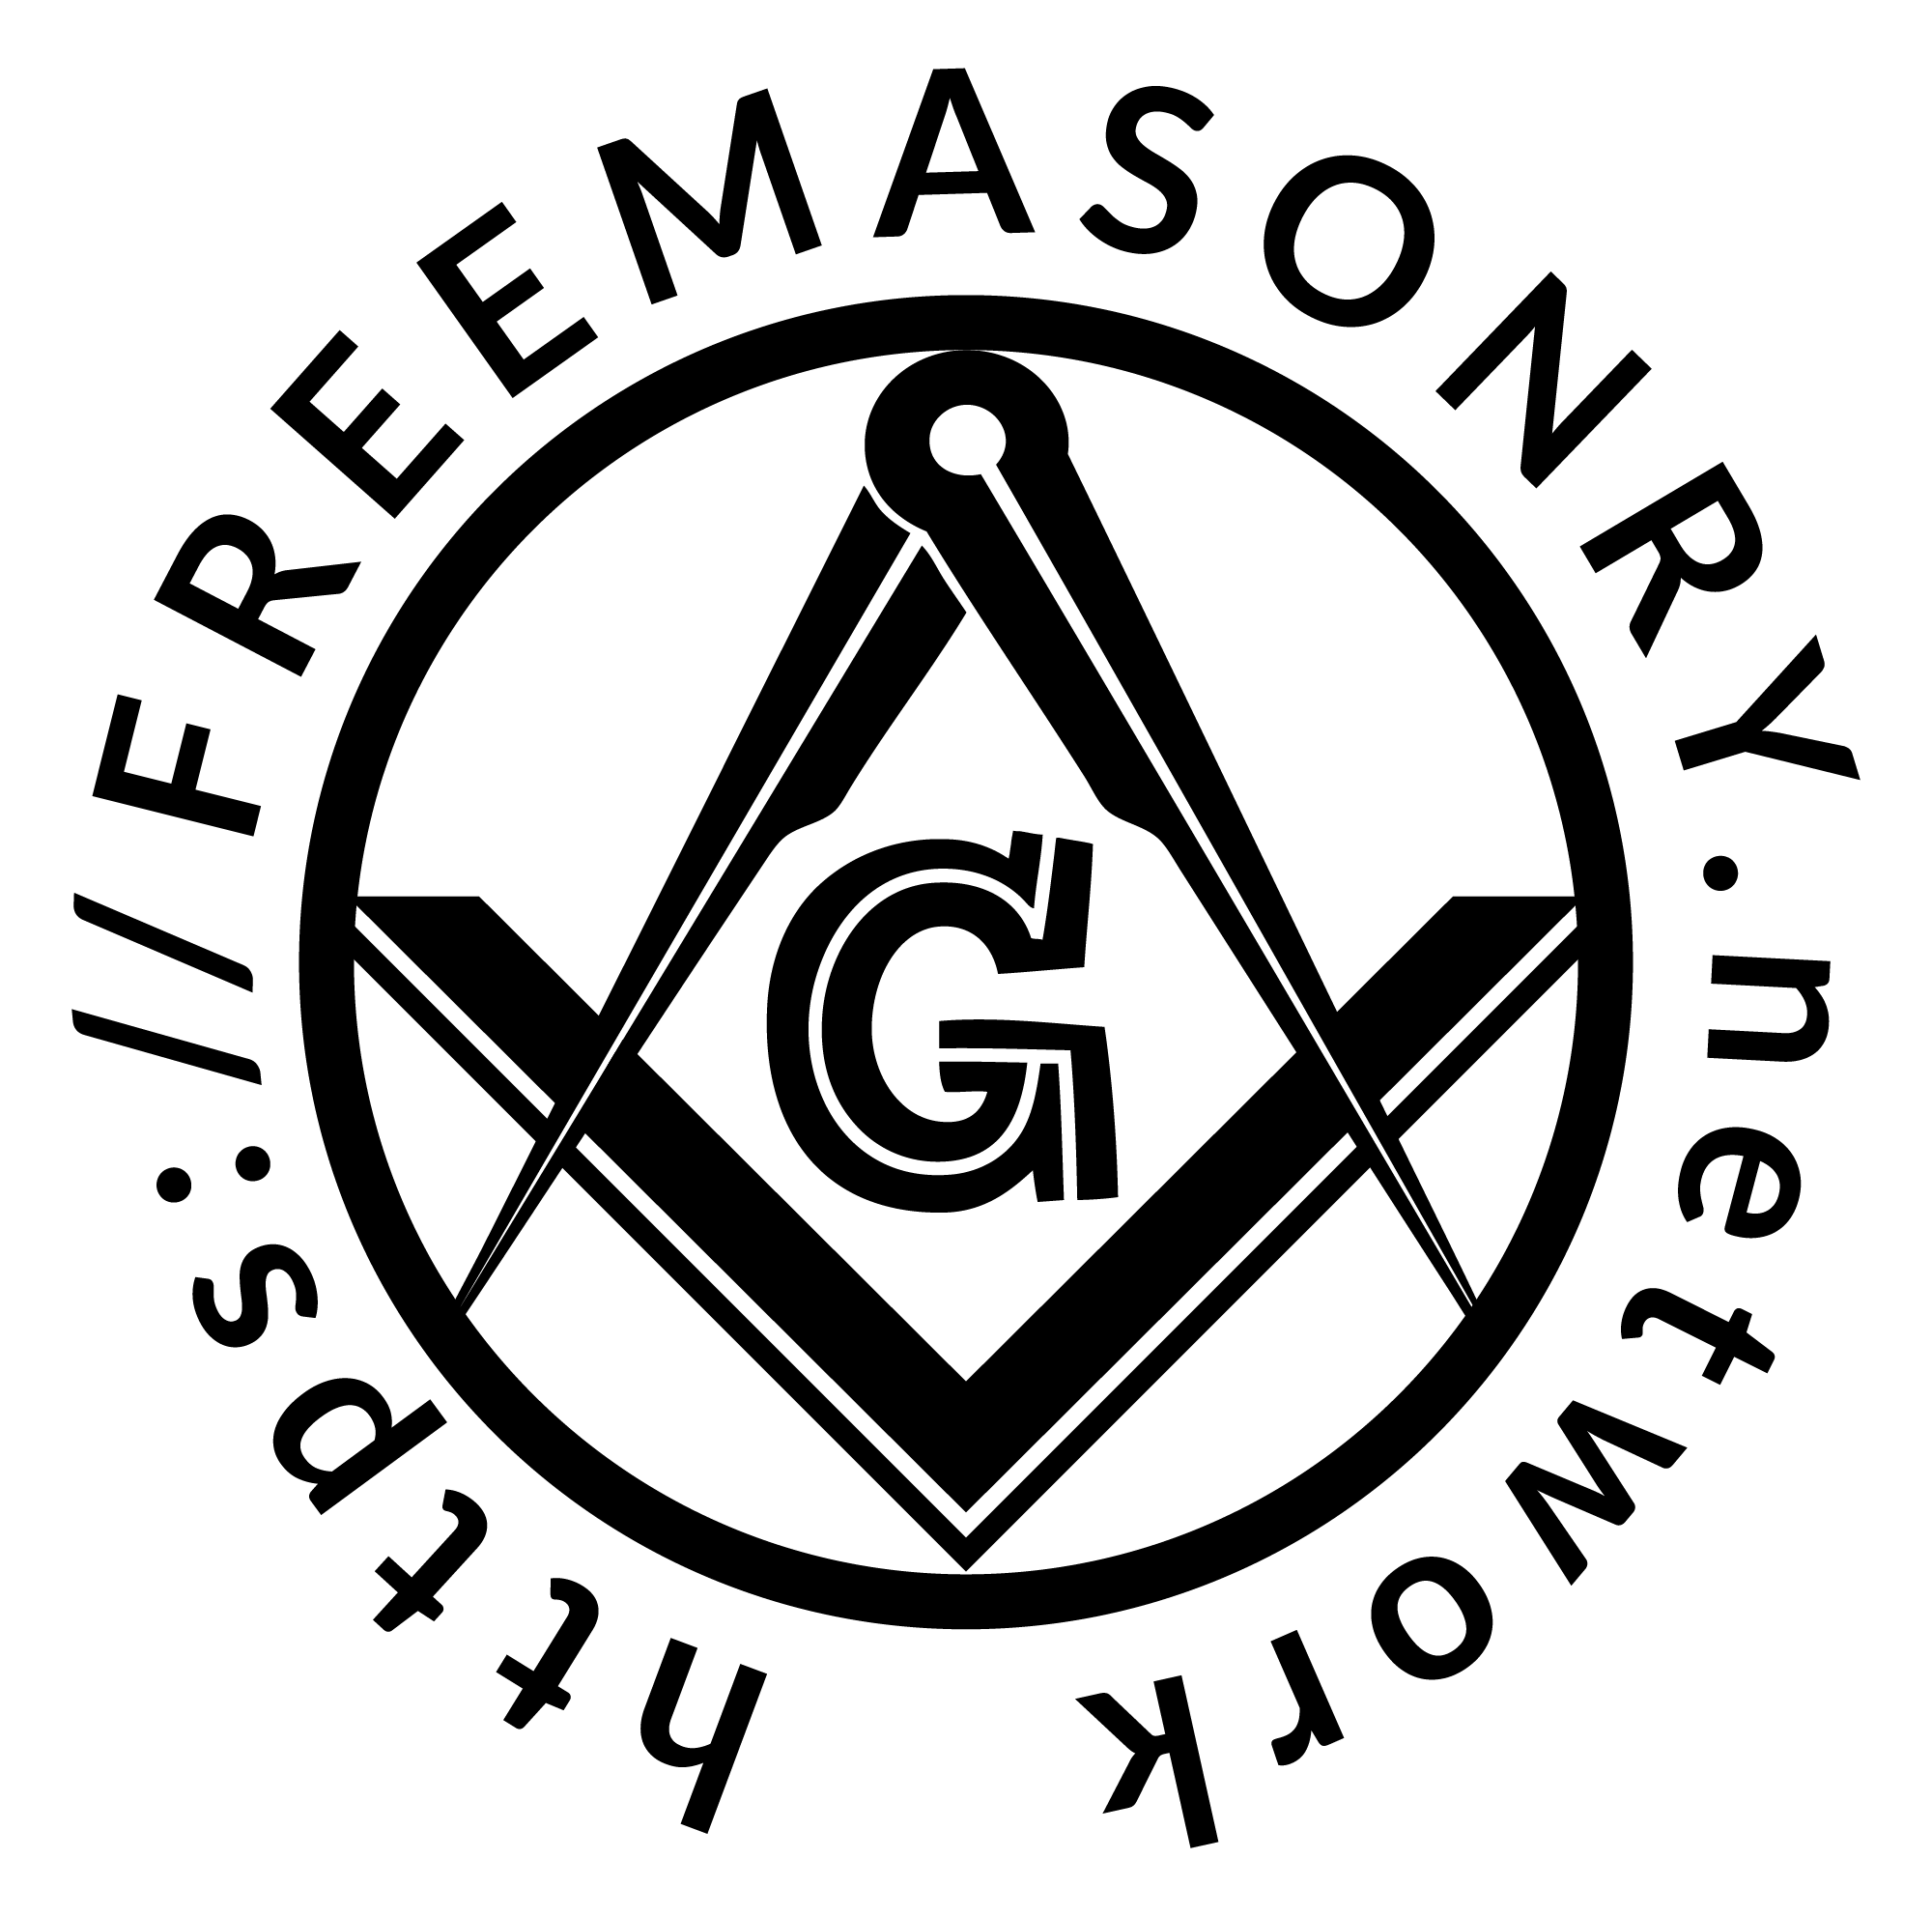 FAMOUS PRINCE HALL FREEMASONS